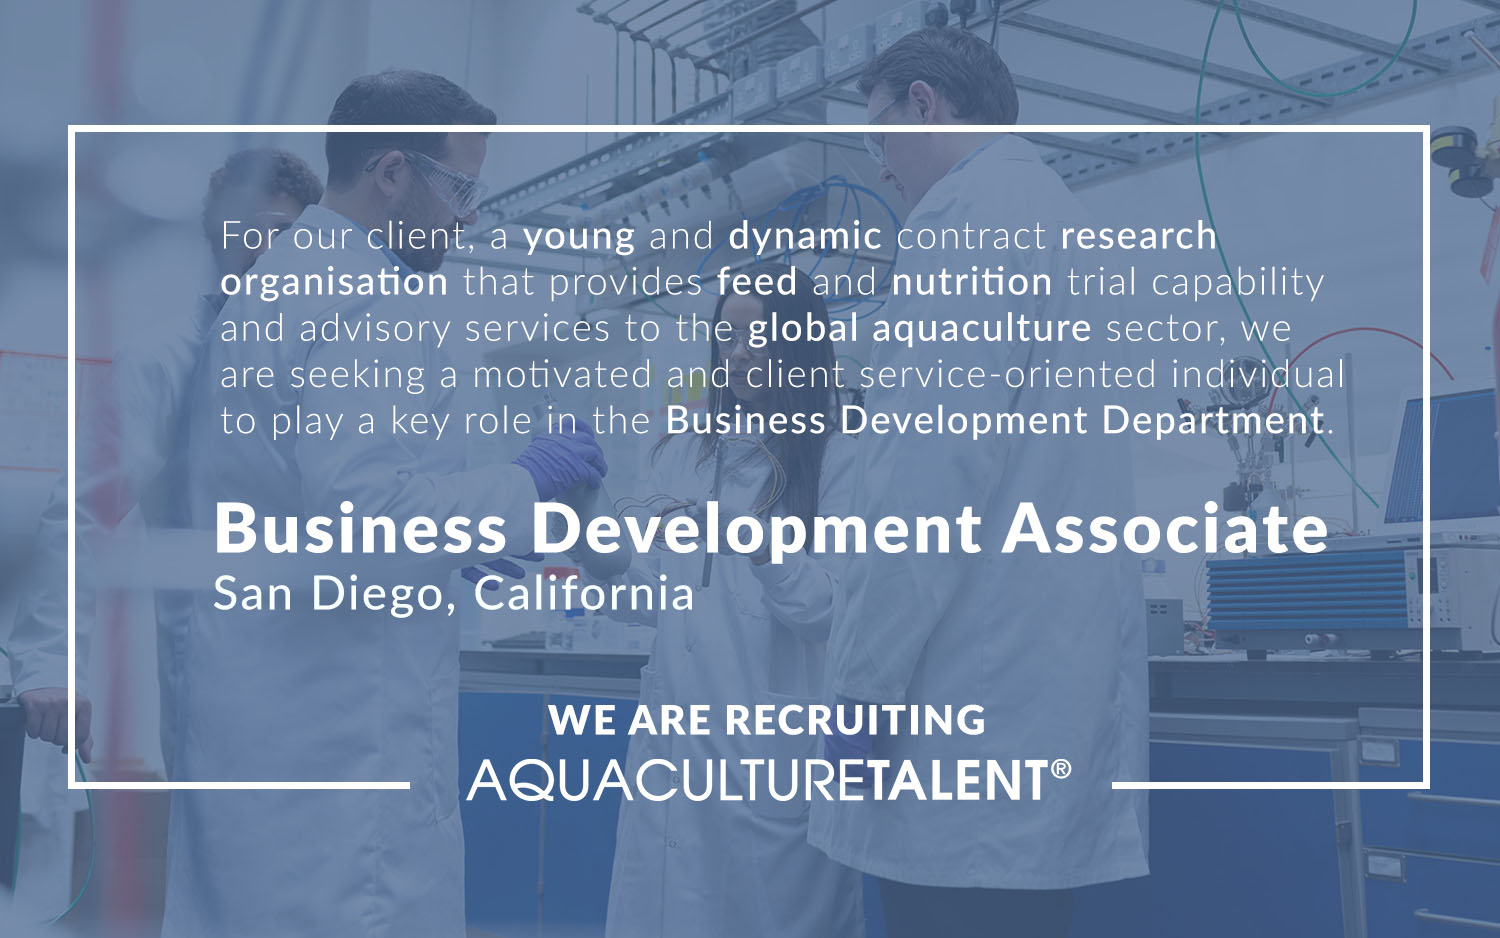 We are seeking a motivated and client service-oriented individual to play a key role in the Business Development Department